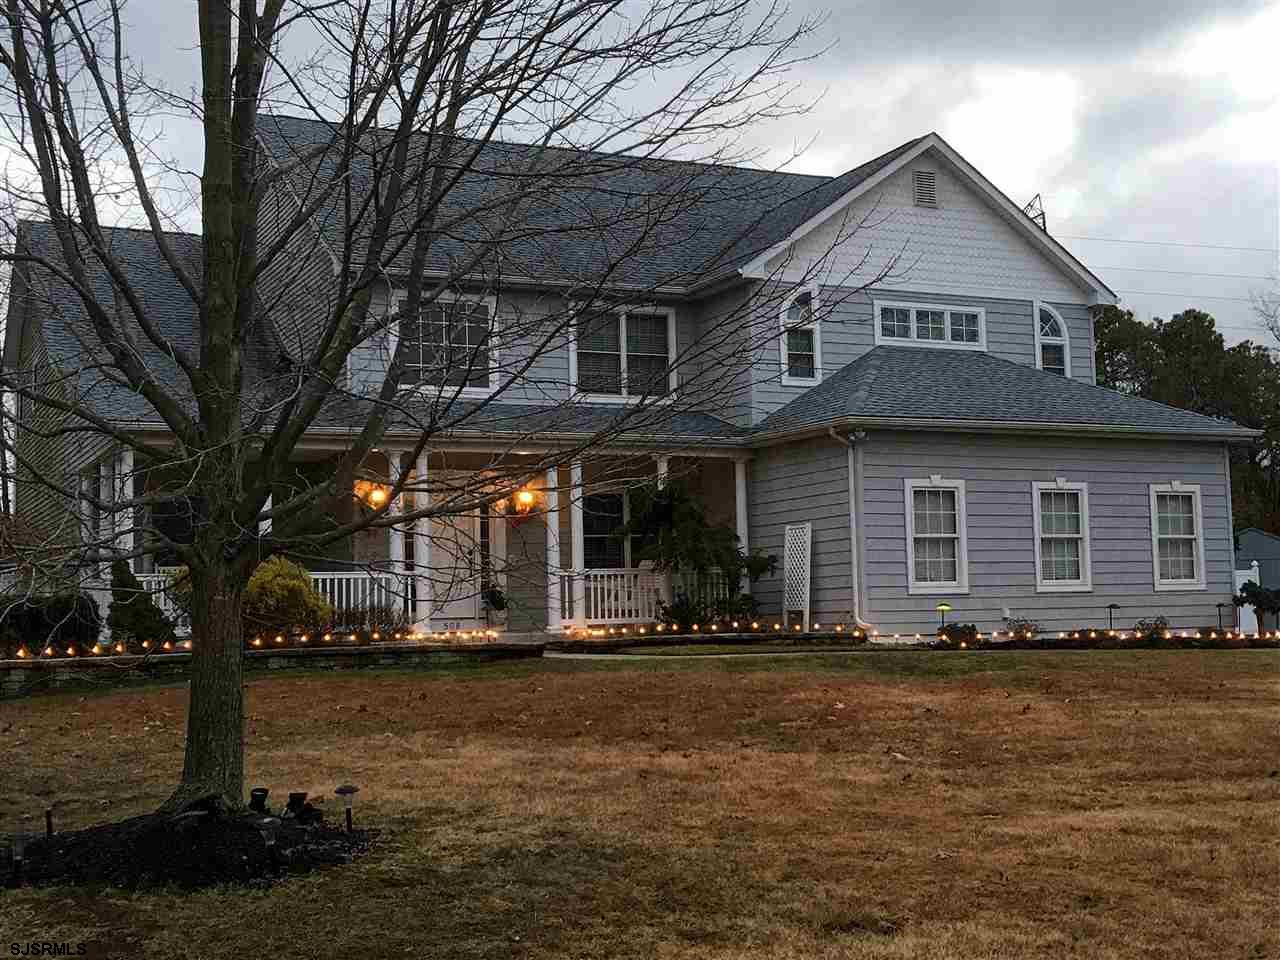 508 Cape Island Ct, Egg Harbor Township, NJ 08234